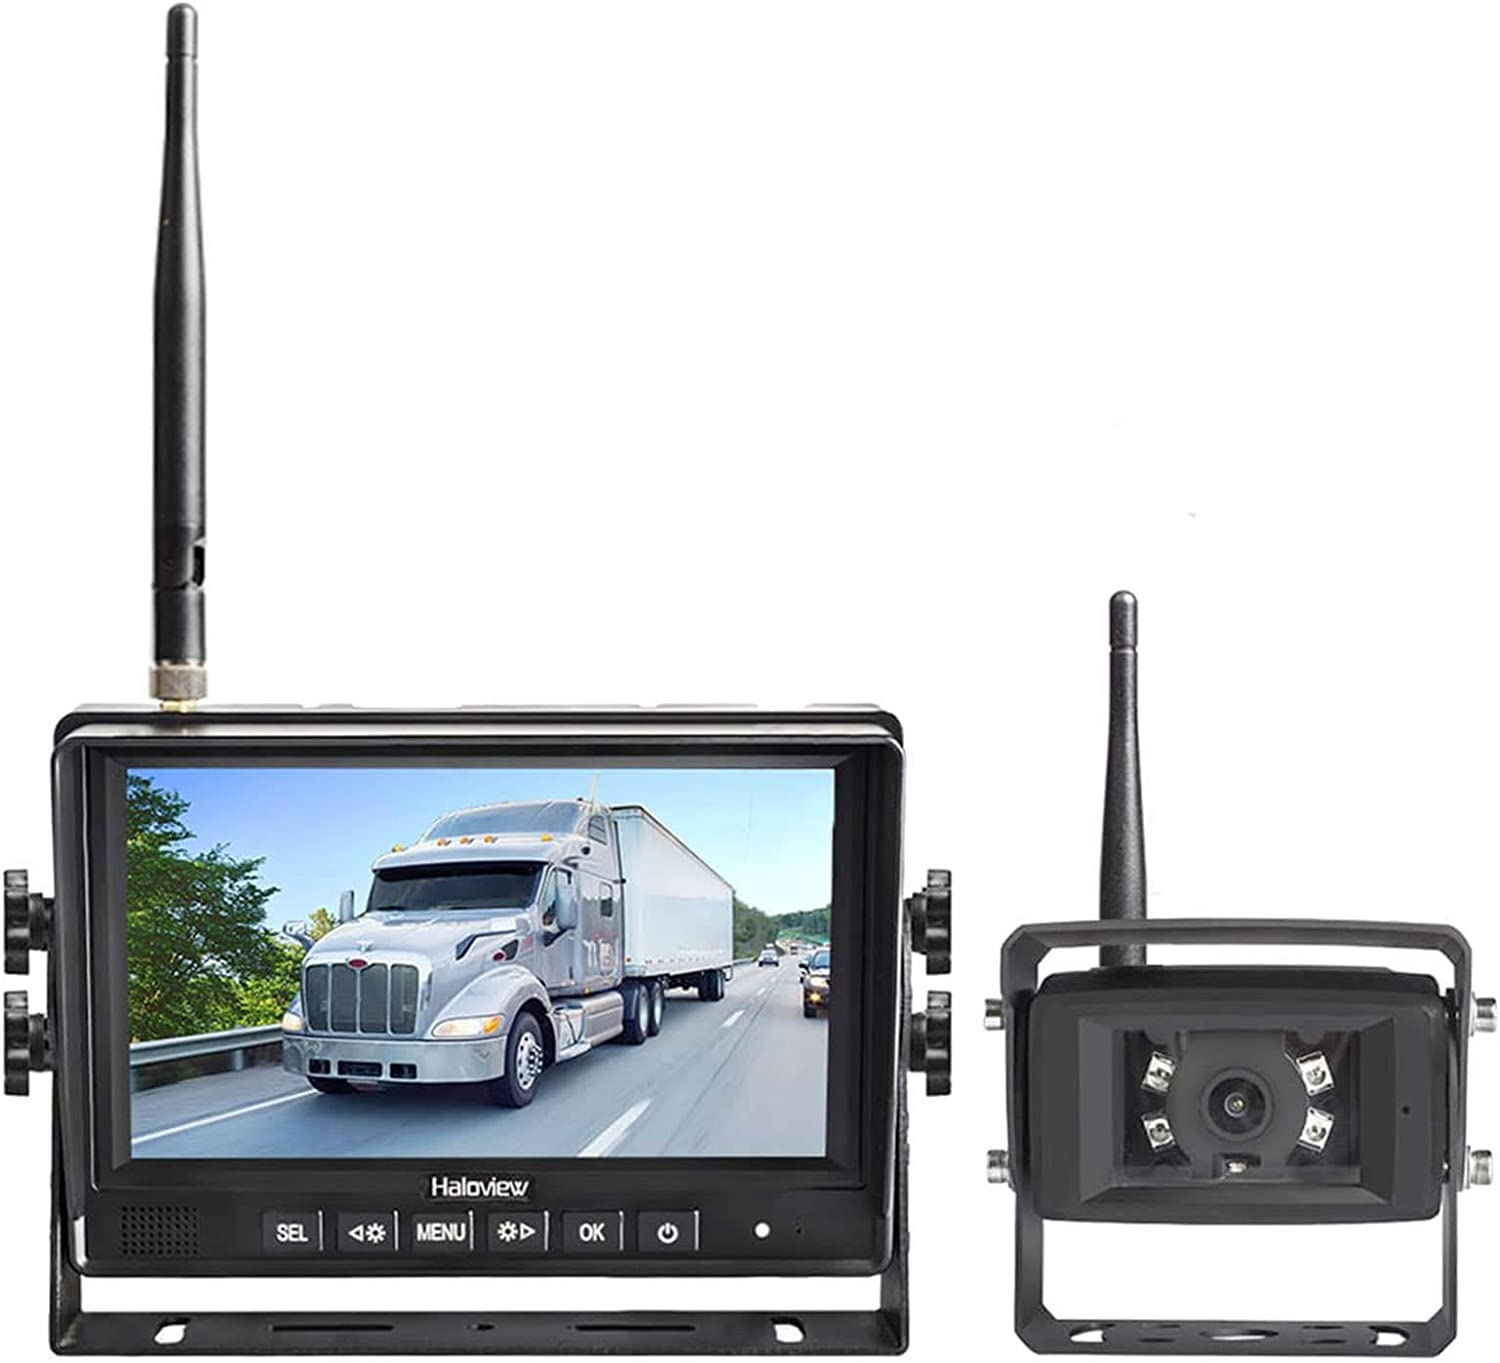 Haloview Wireless BV Backup Camera System